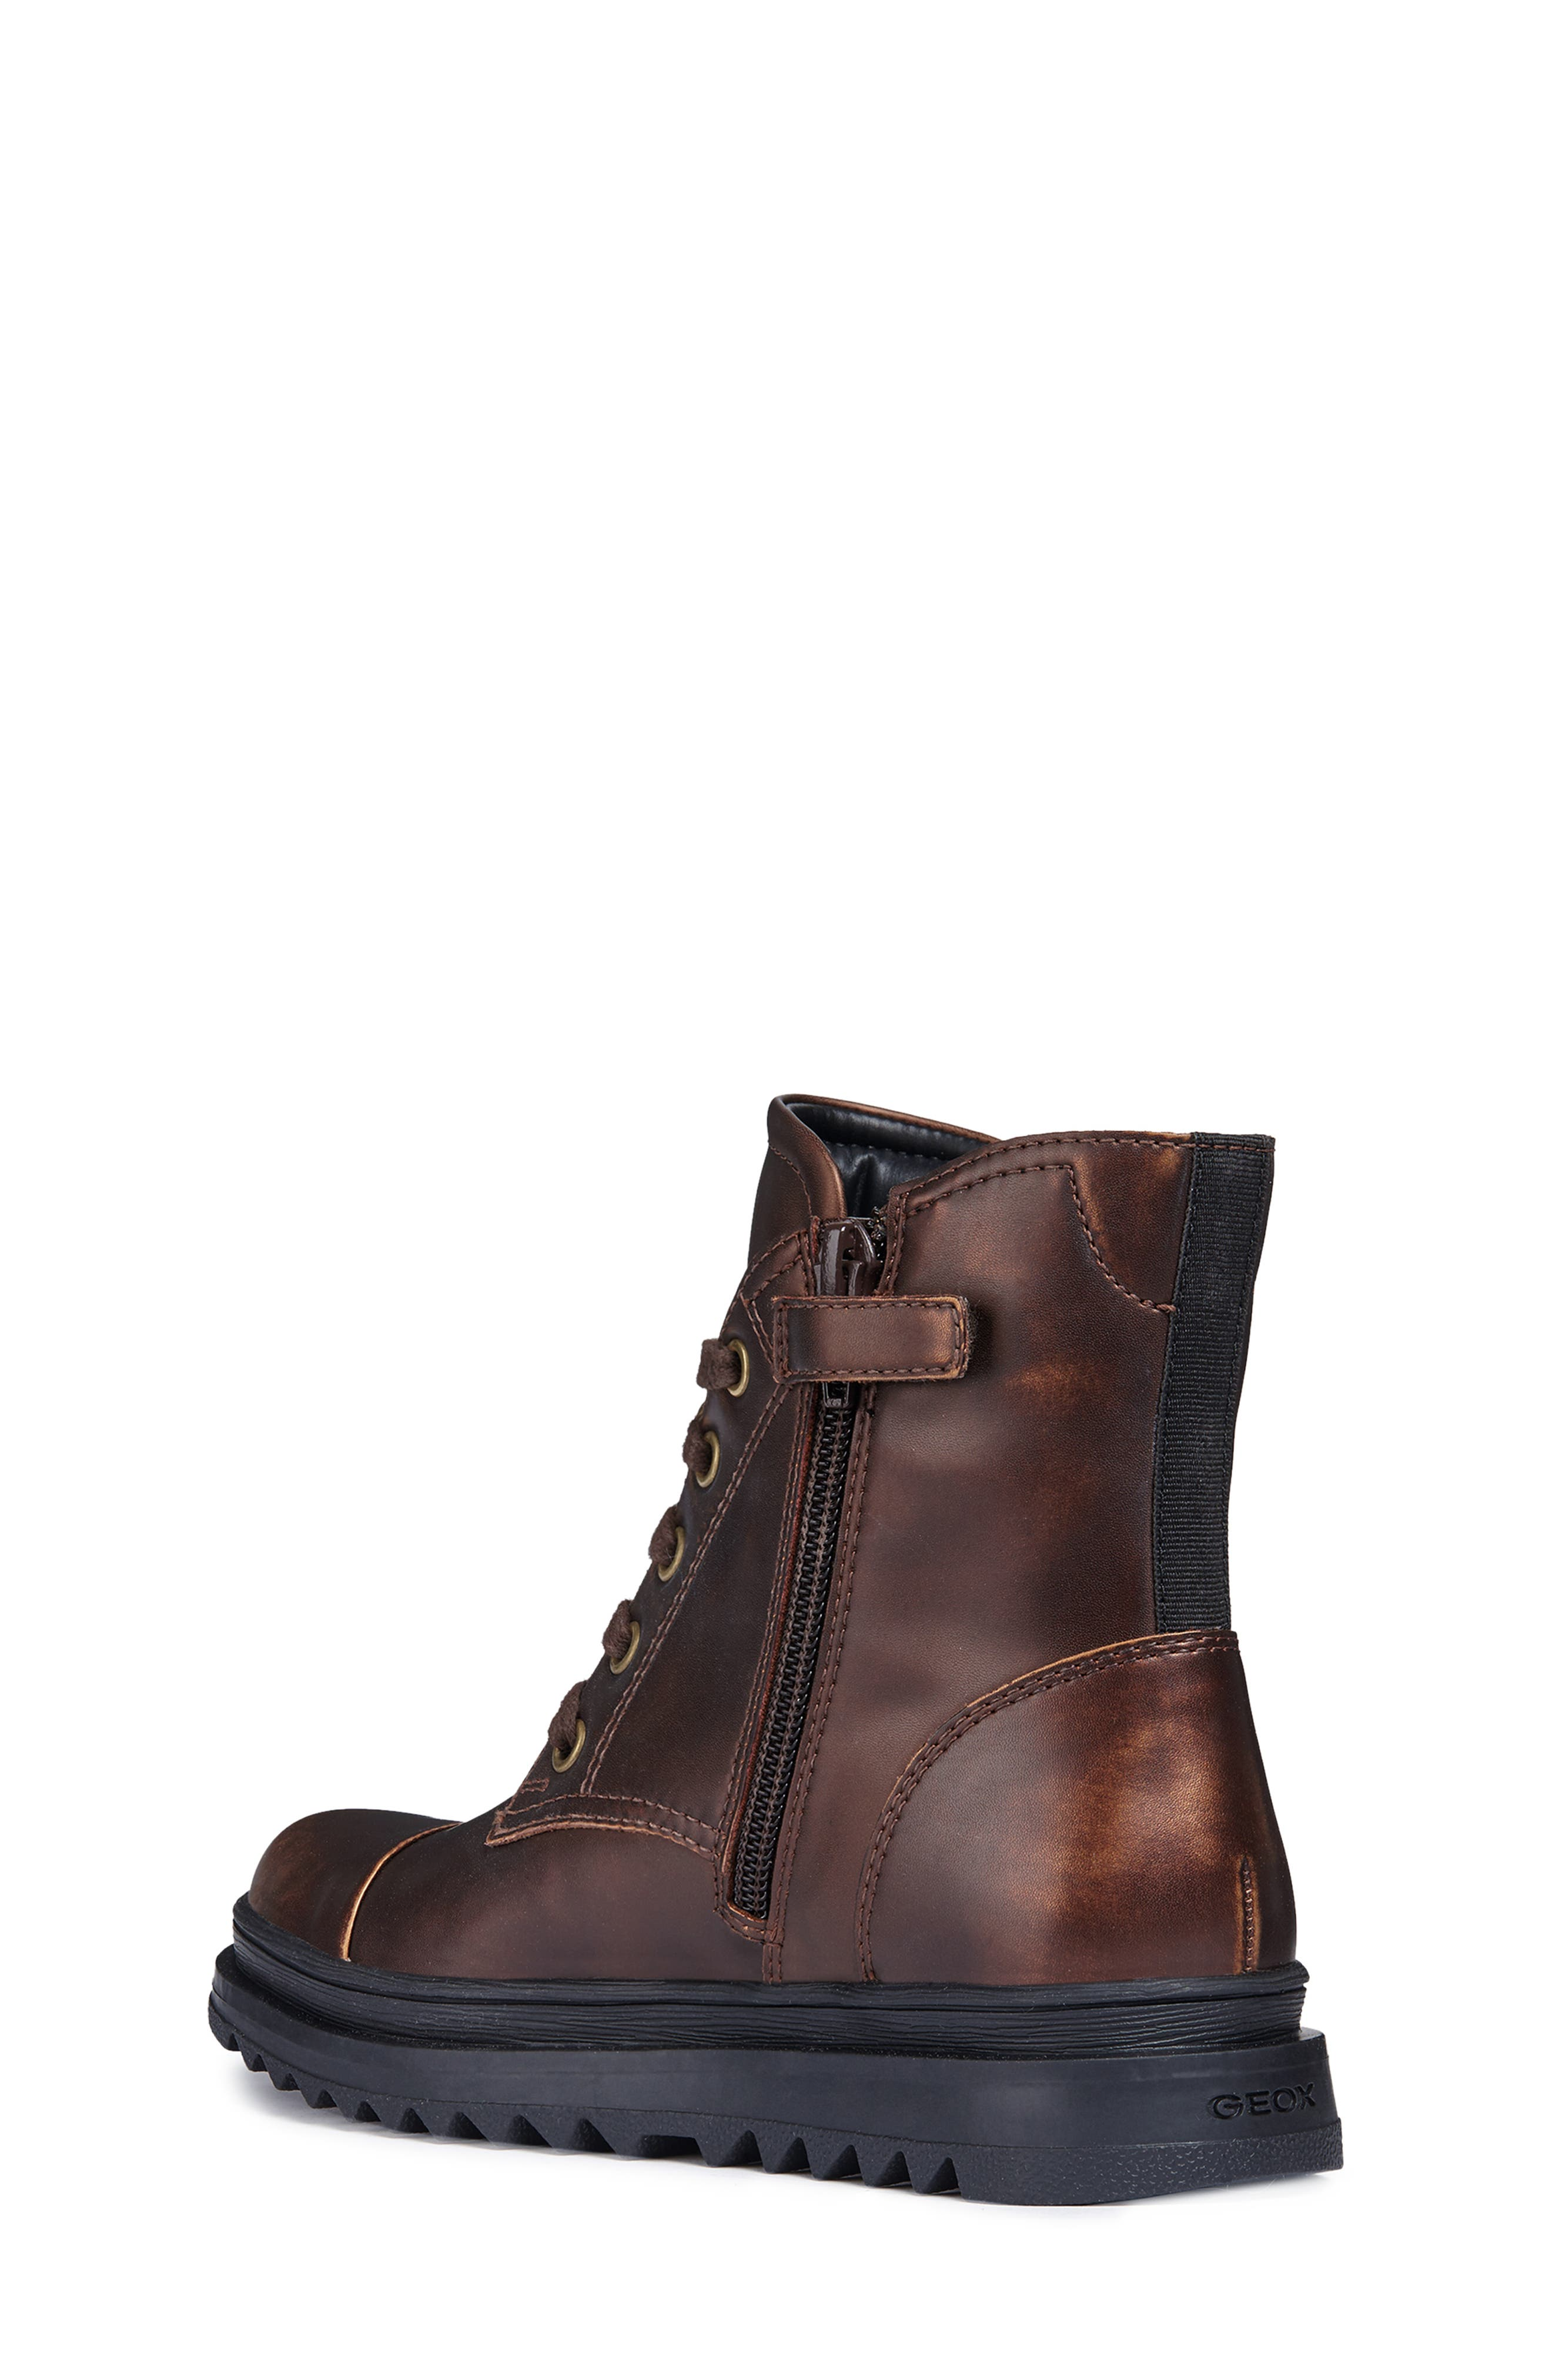 Gilly Jaw 2 Lace-Up Boot,                             Alternate thumbnail 2, color,                             BRONZE